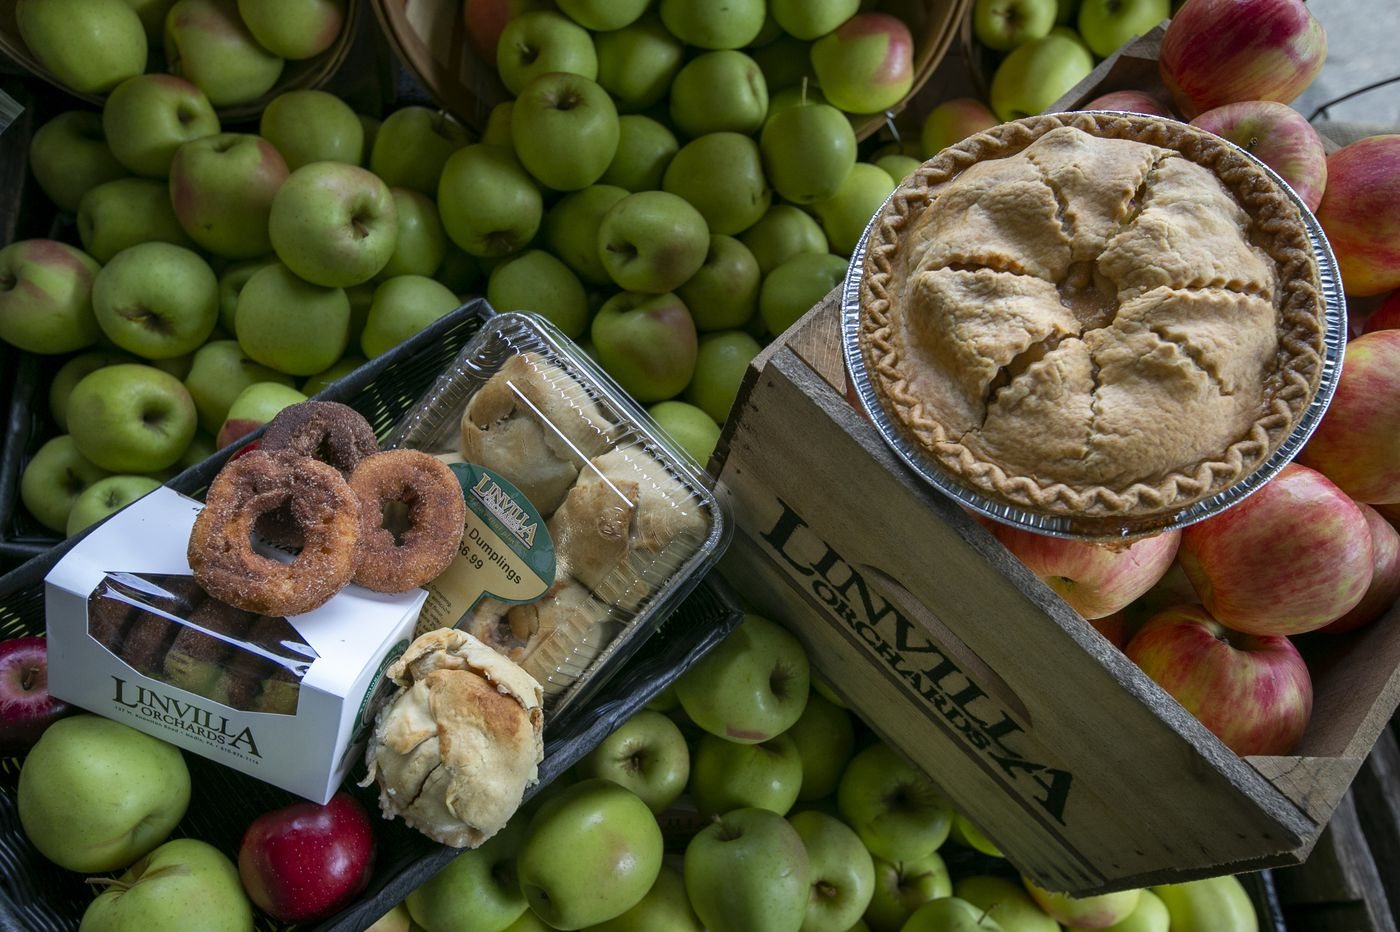 8 places to pick your own apples near Philly, and grab doughnuts and cider, too